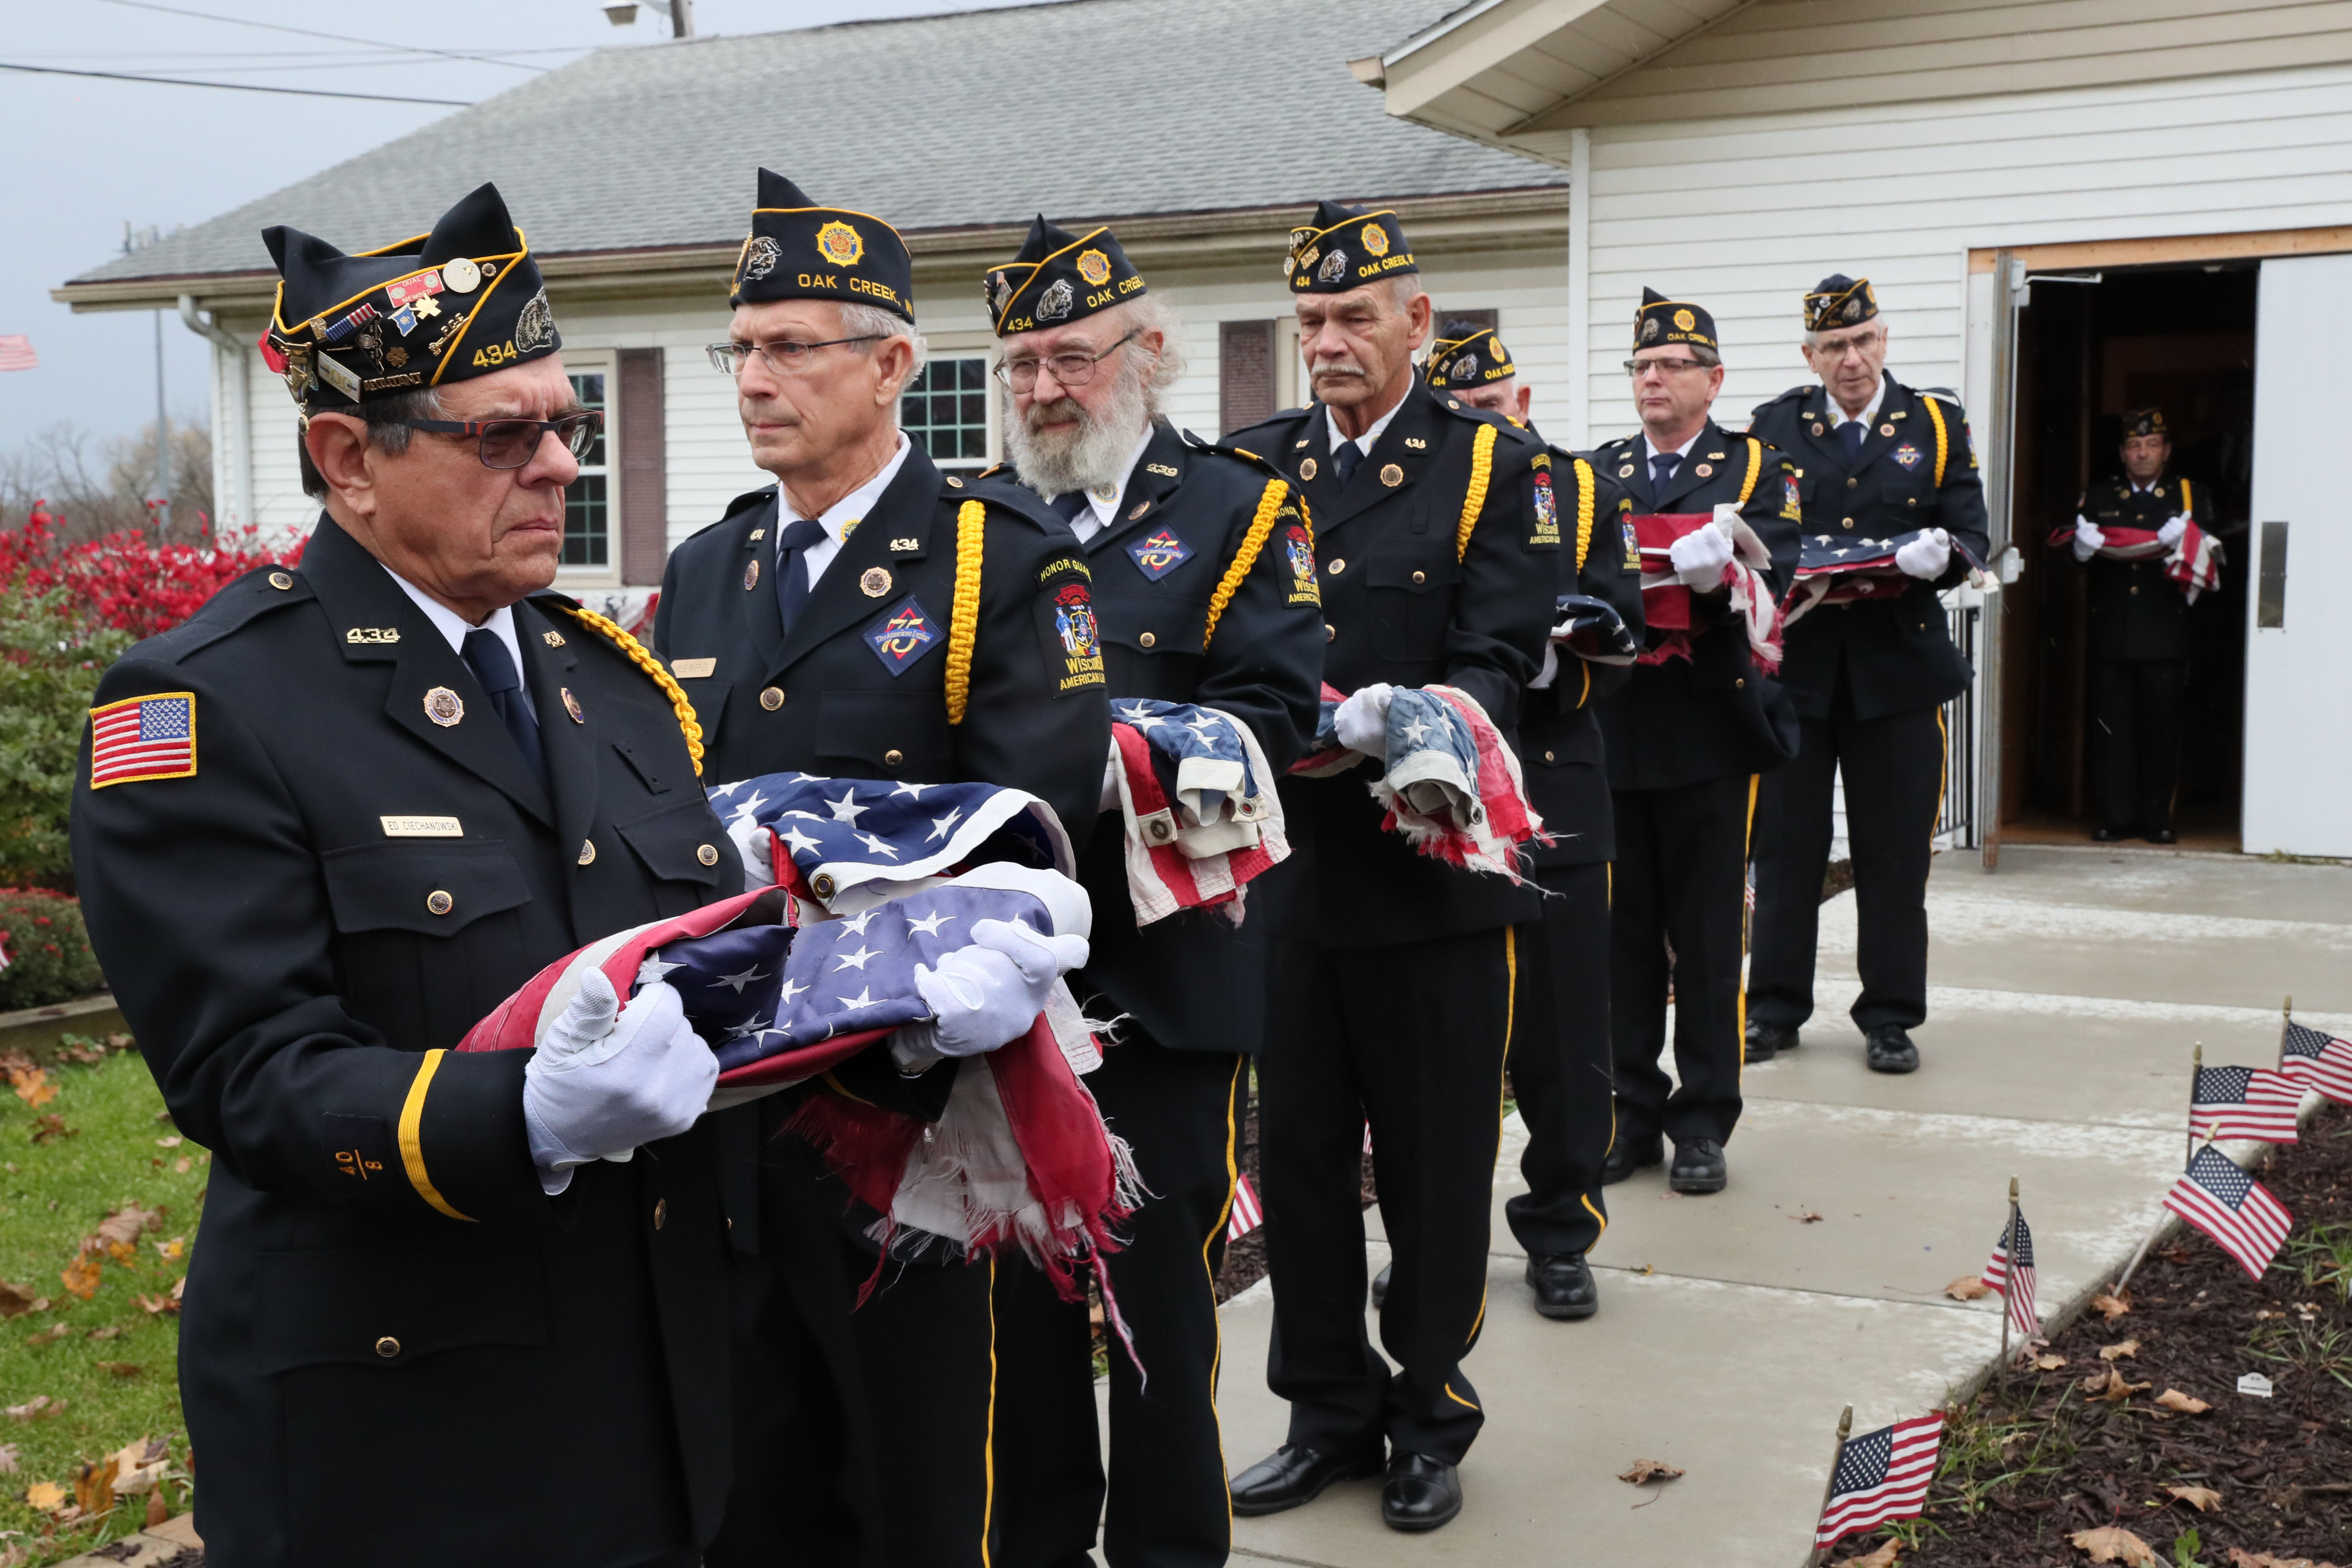 Here Ed Ciechanowski (far left) a member of the honor guard, holds a flag along with others as they make their way toward a fire where the flags will be destroyed.  Photo by Michael Sears/Milwaukee Journal Sentinel